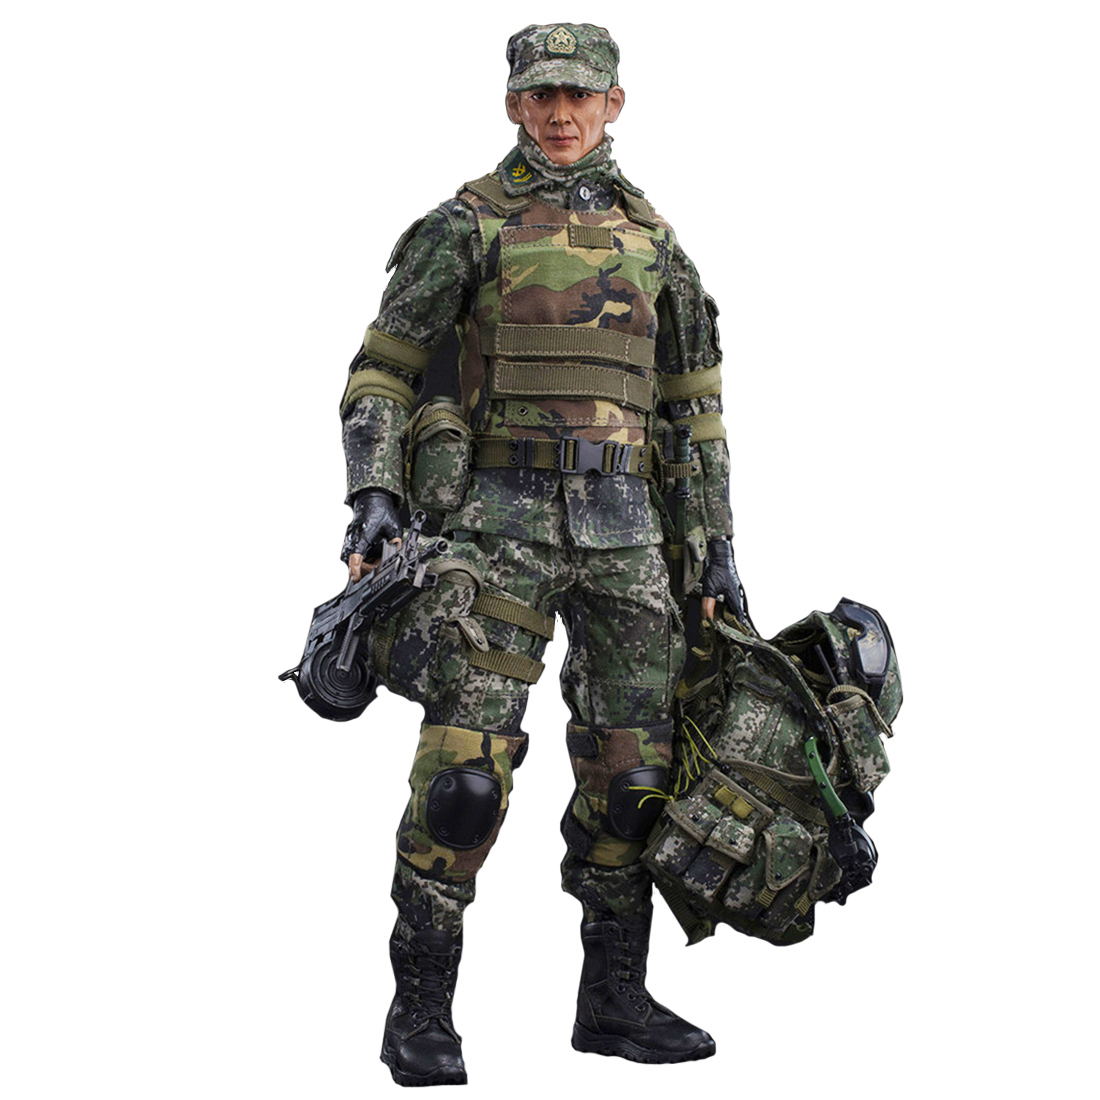 FLAGSET 1/6 Chinese Army Machine Fighter Soldier Model Action Figure Model Toys & HobbiesFLAGSET 1/6 Chinese Army Machine Fighter Soldier Model Action Figure Model Toys & Hobbies